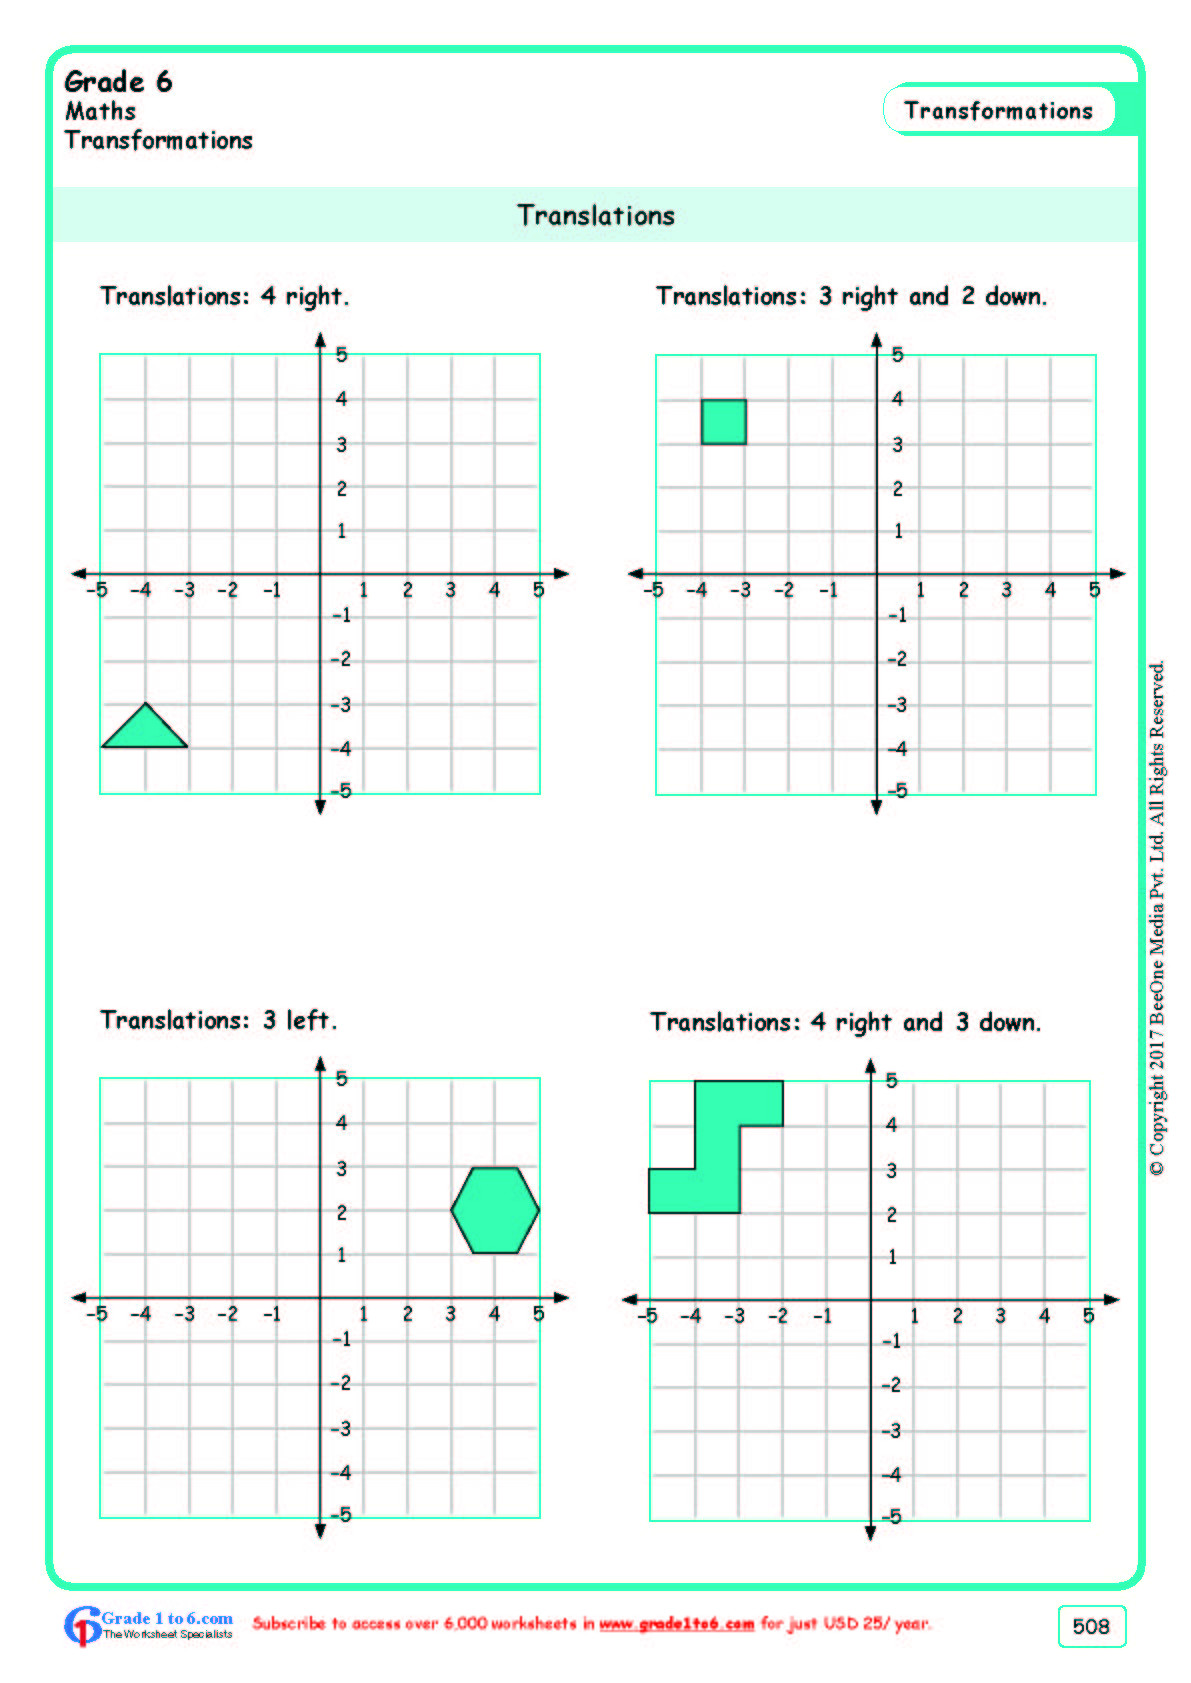 Translation Worksheets Math Grade 6 Class Six Translations Worksheets